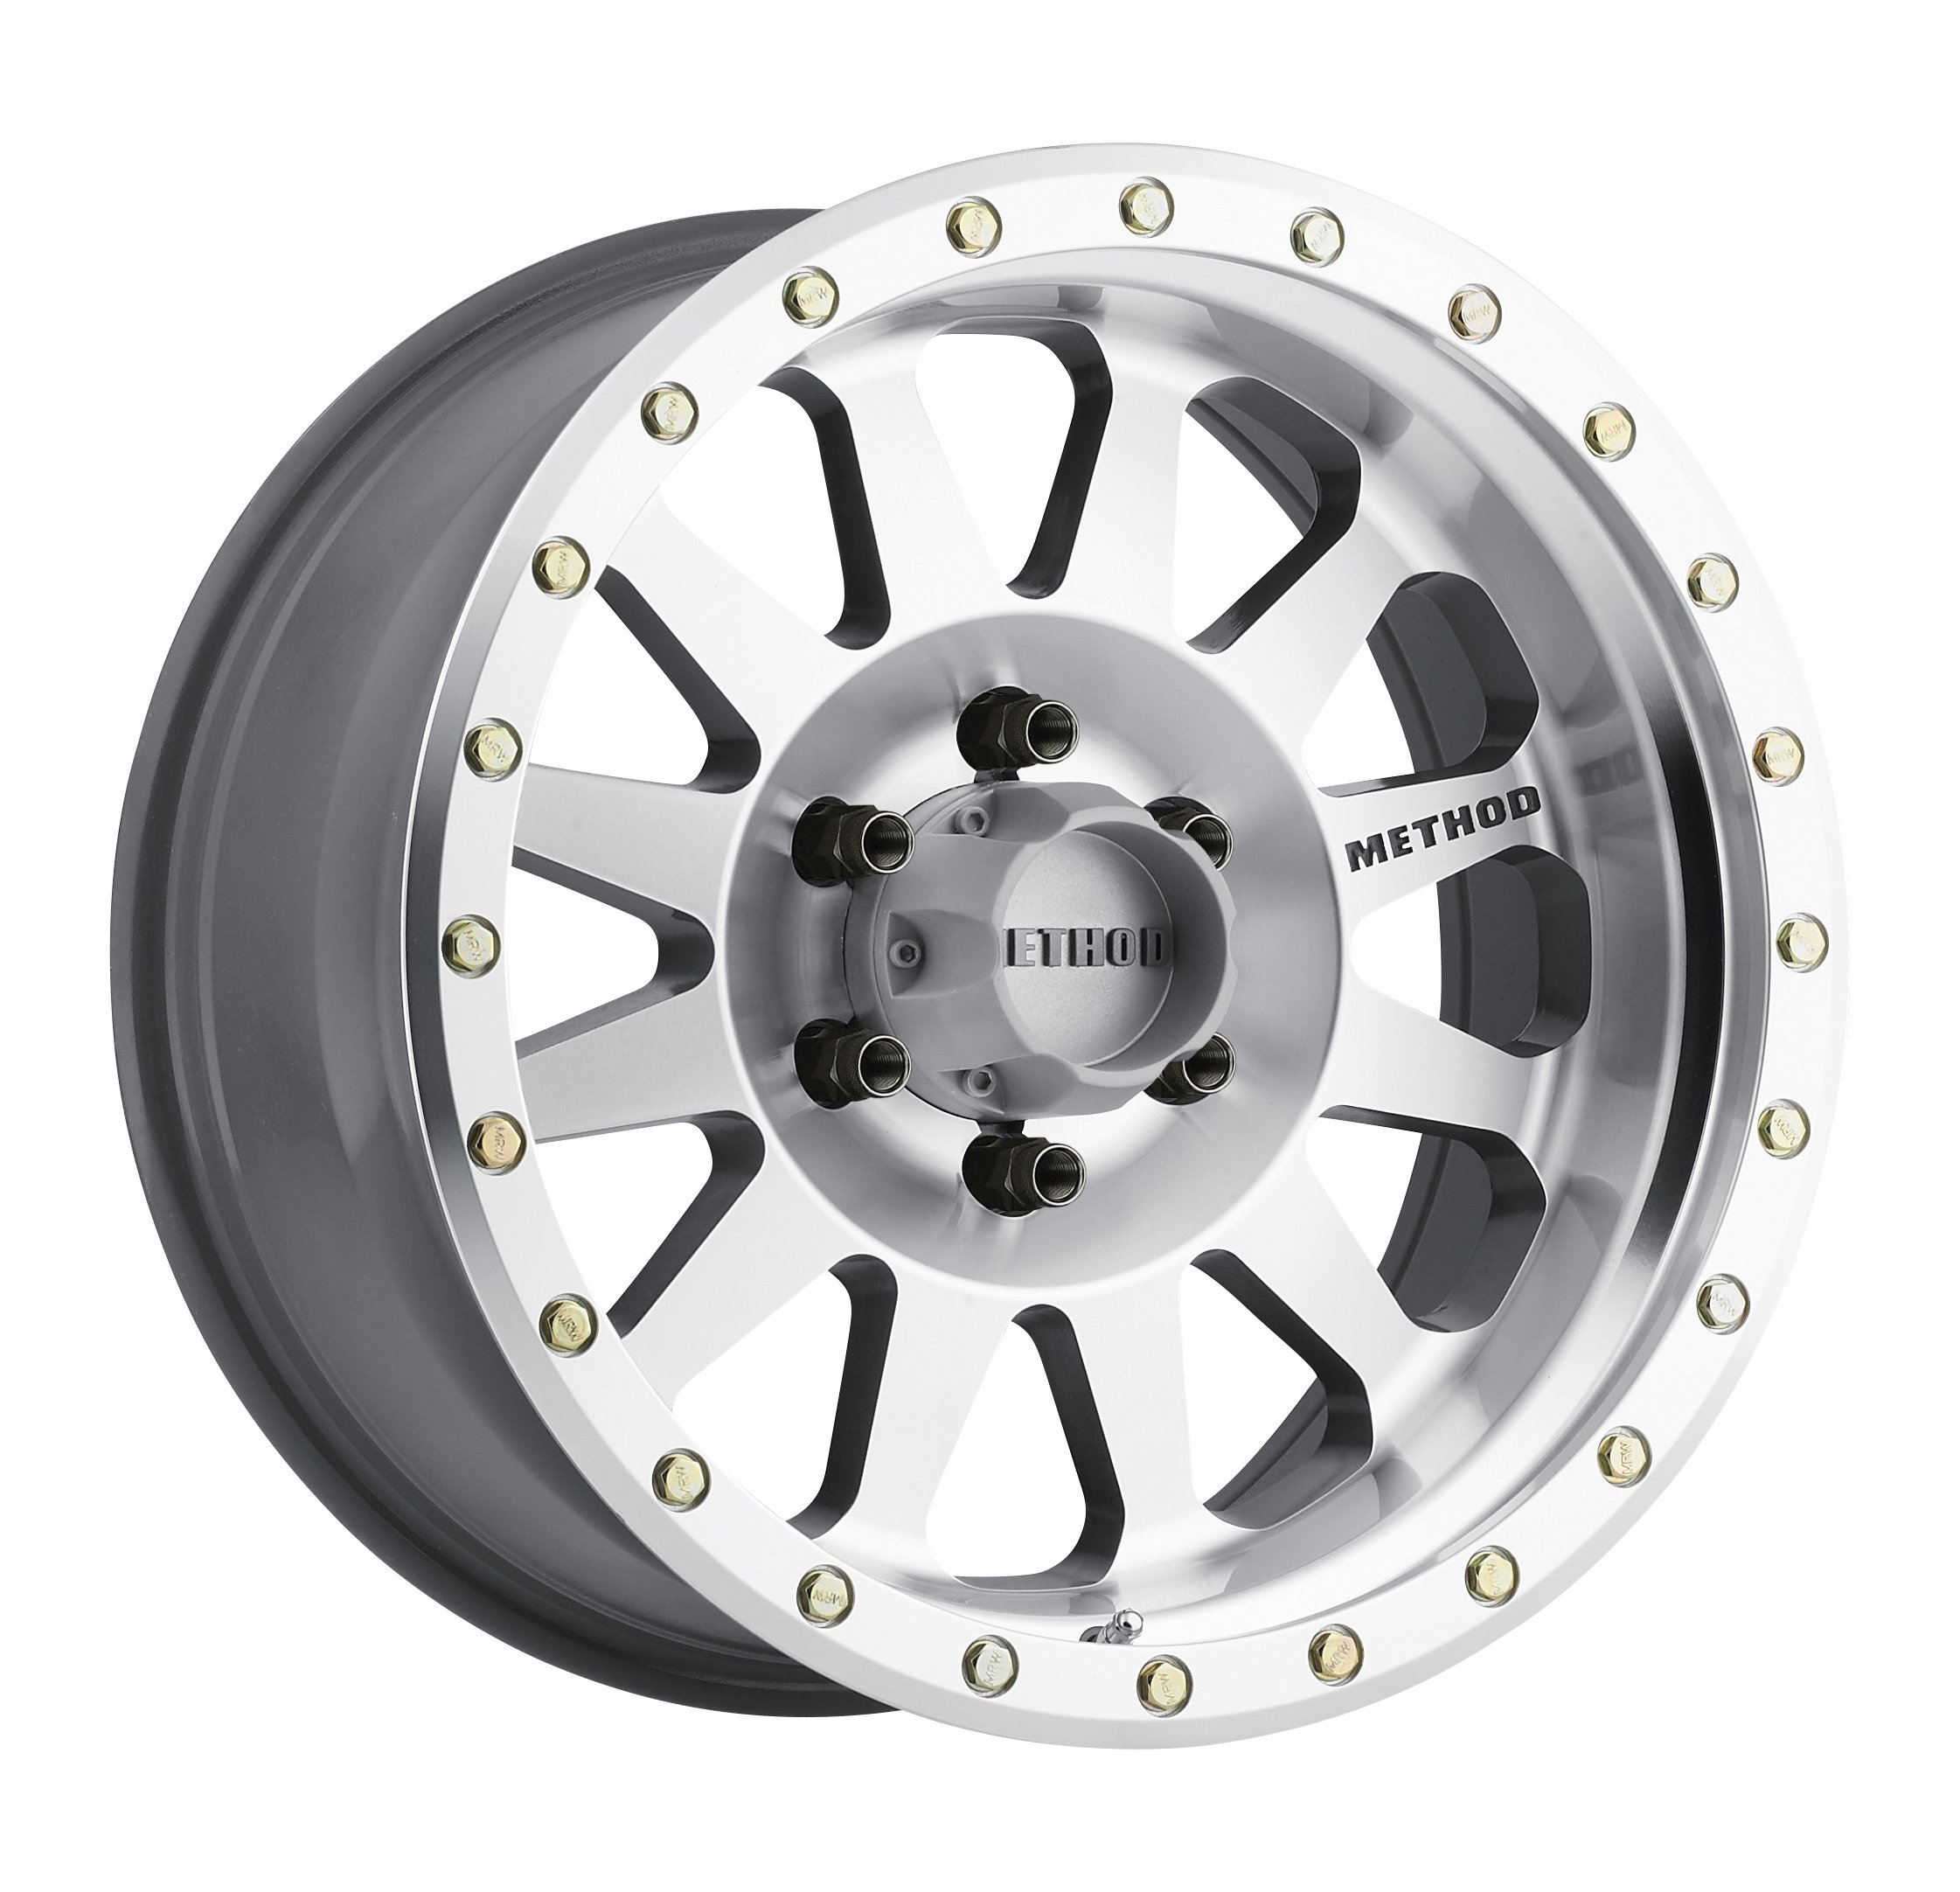 Method Race Wheels Double Standard Machined/Clear Coated Wheel with Machined Finish and Zinc Plated Accent Bolts (18x9''/5x5'', -12mm offset) -12 mm offset by Method Race Wheels (Image #1)